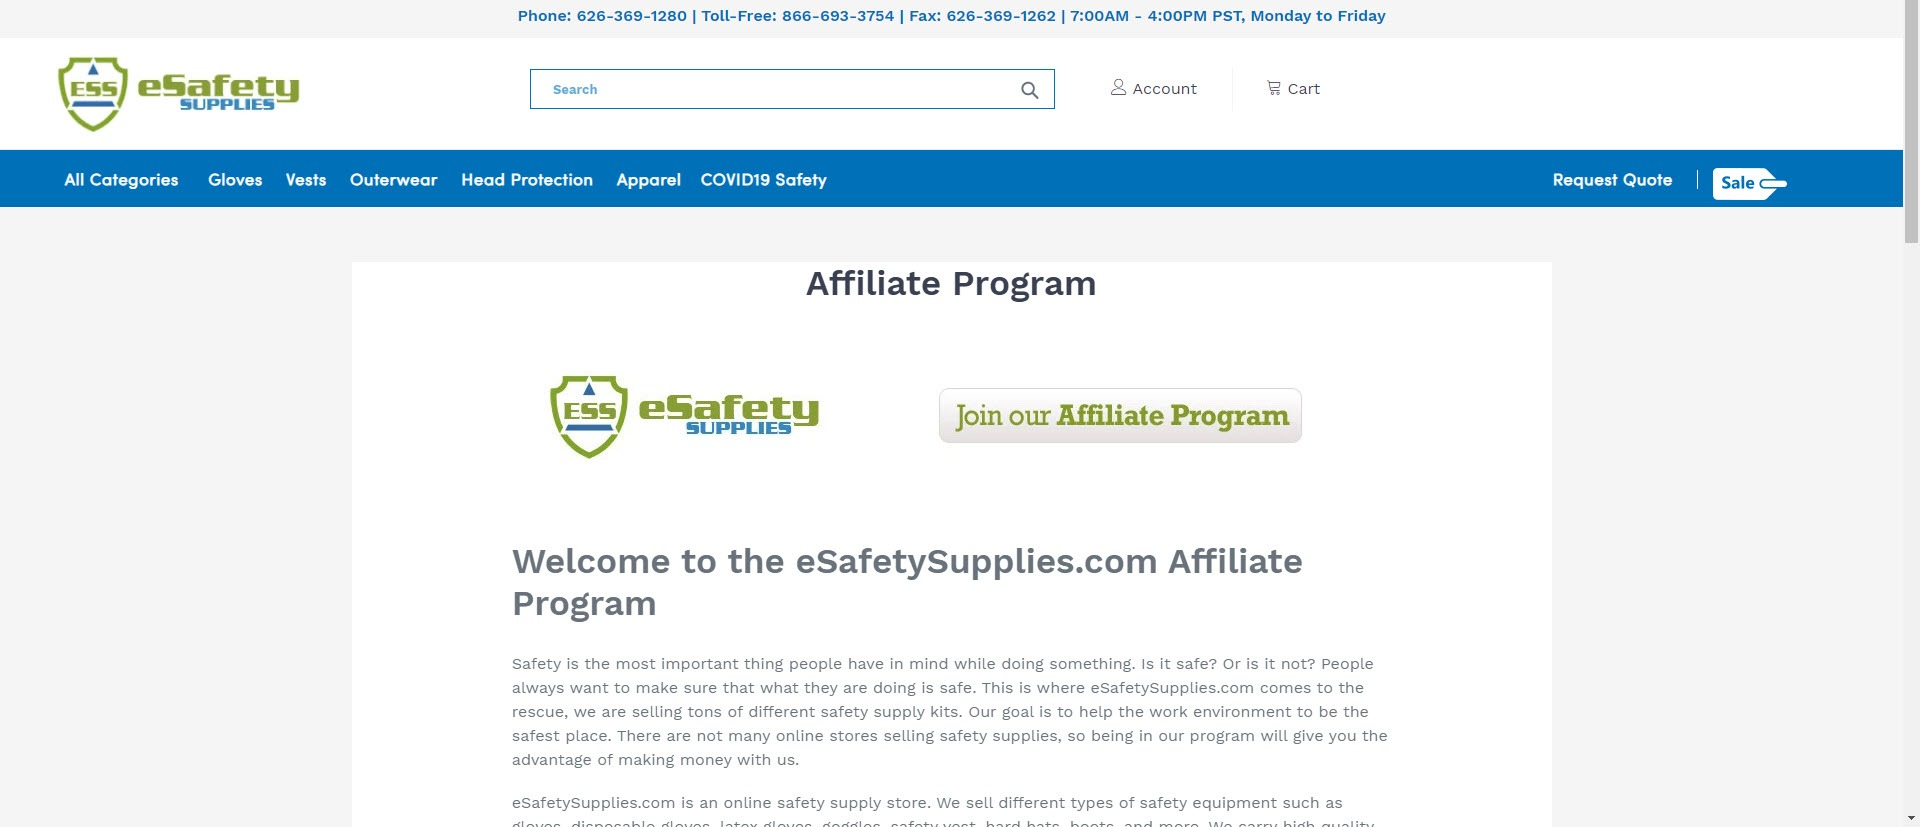 Survival Affiliate Programs - eSafety Supplies Affiliate